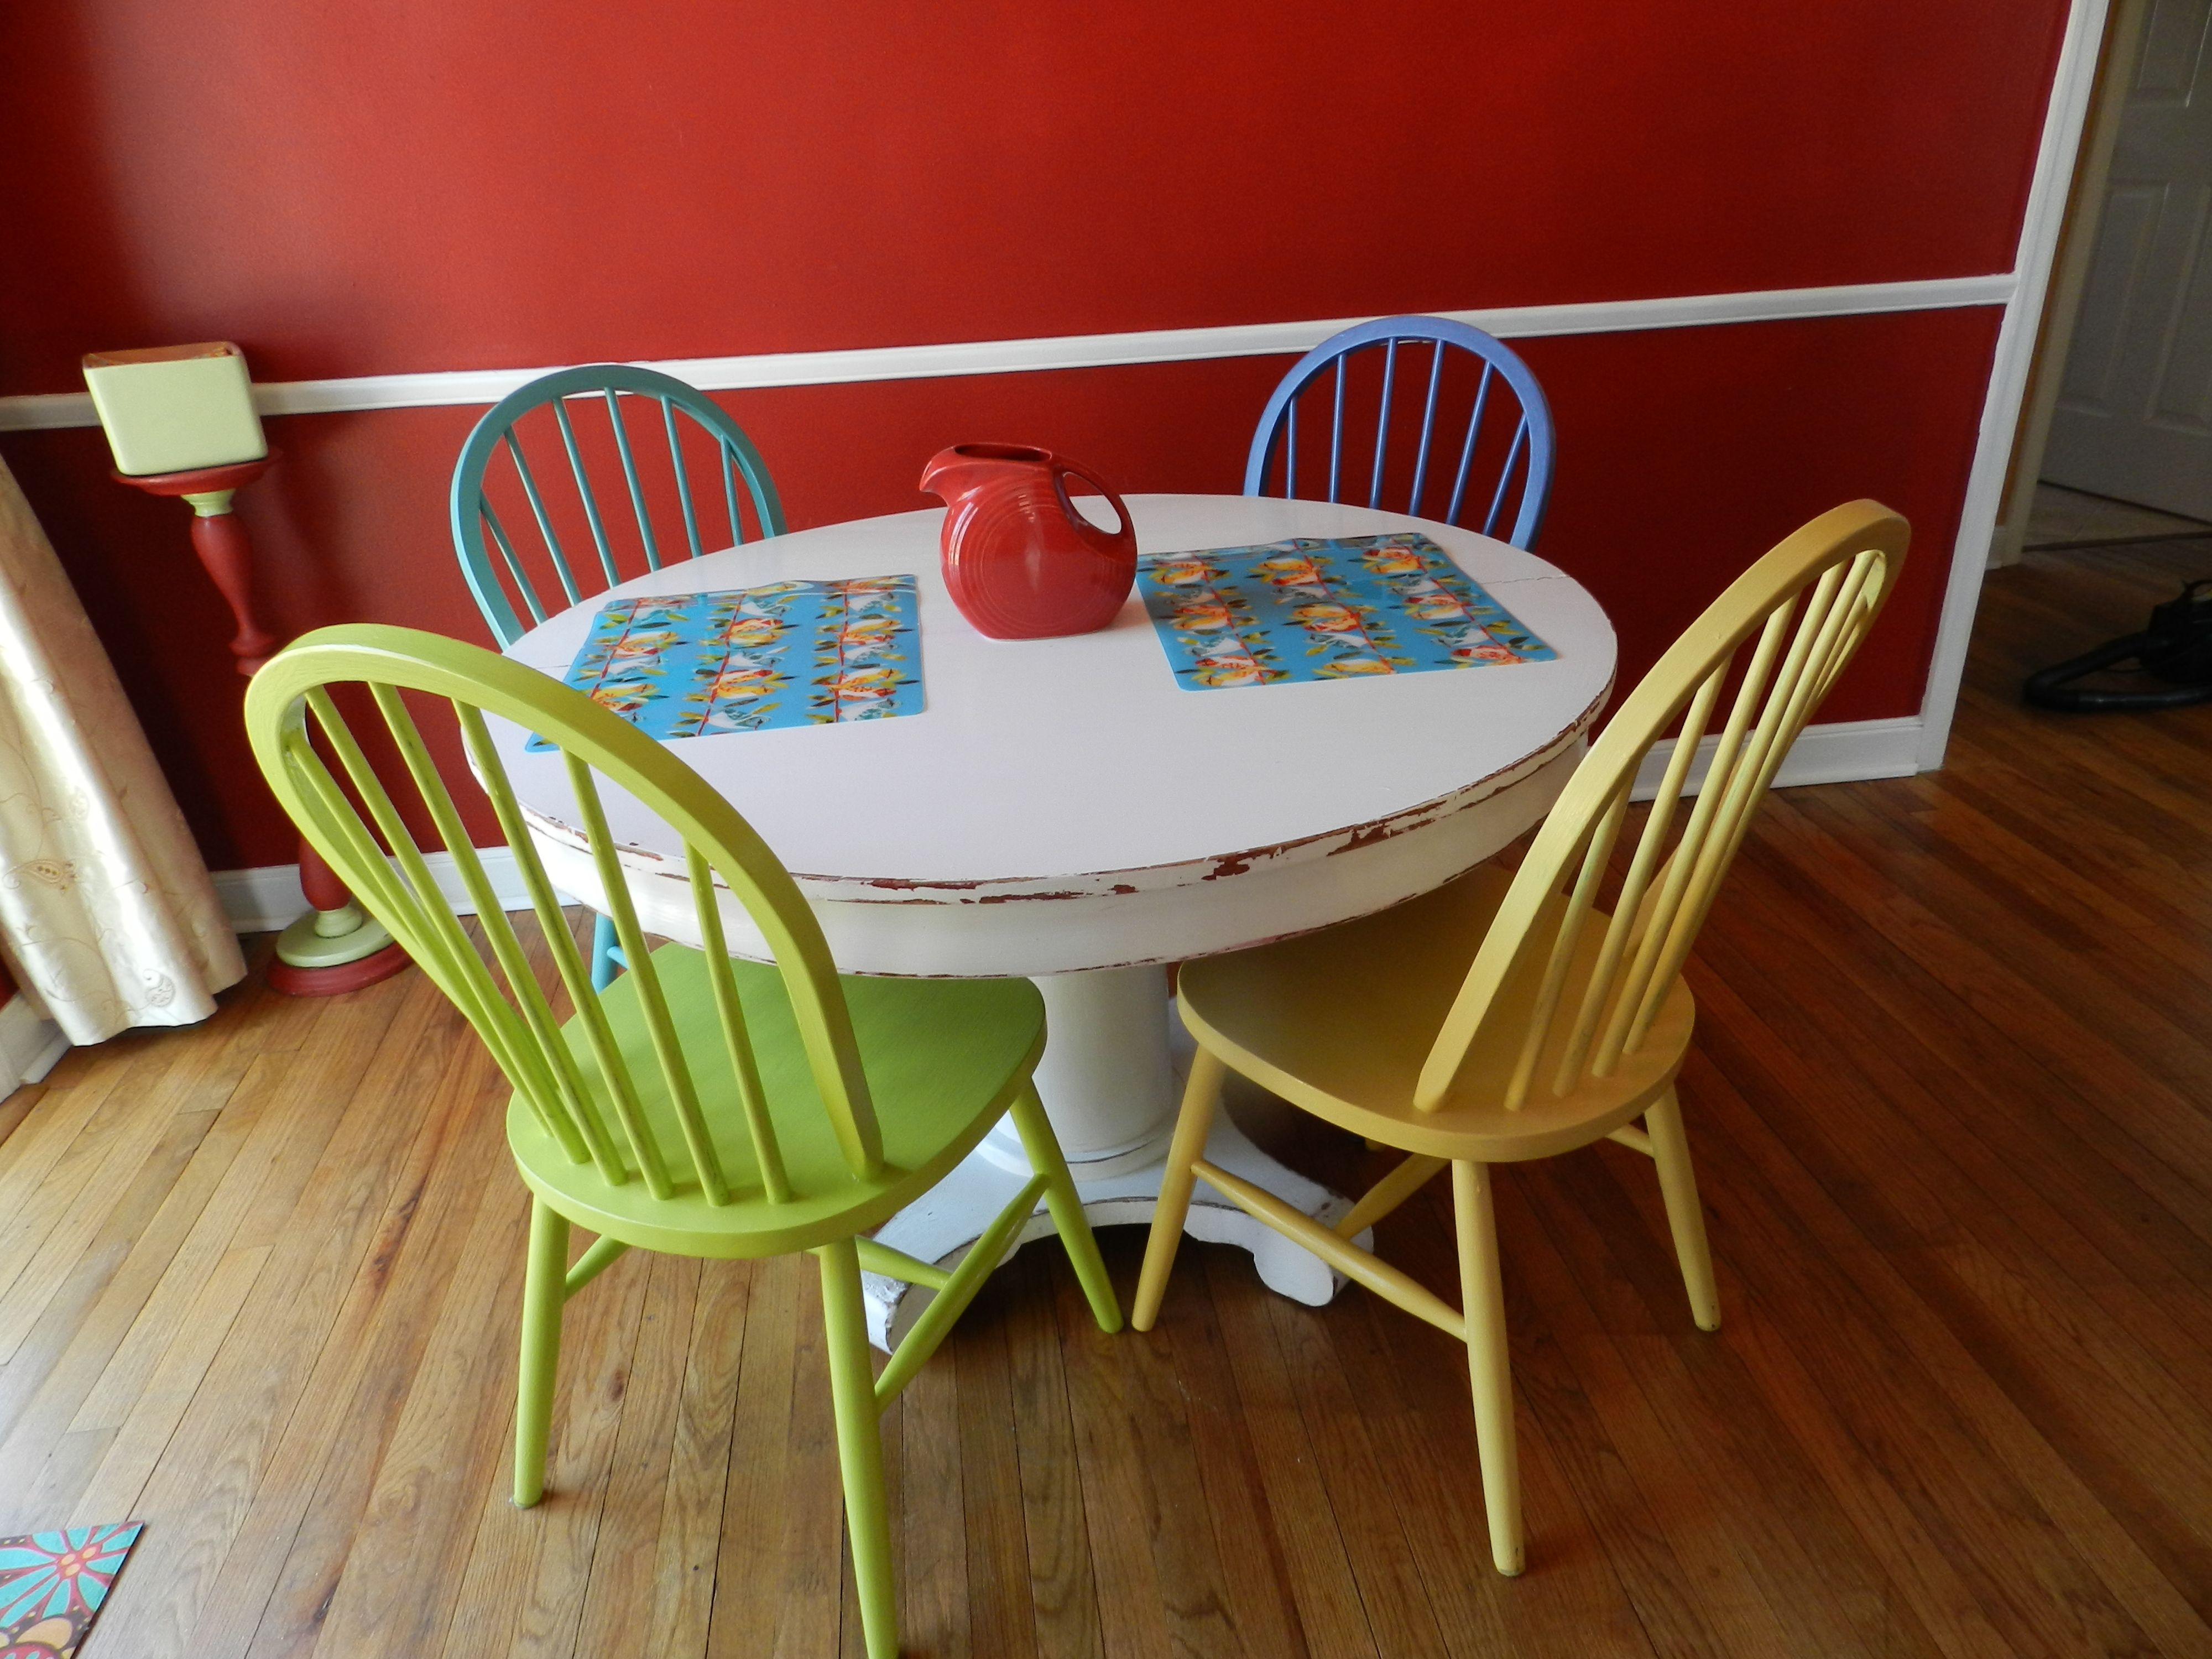 Pin By Jean Coulton On Color I Have To Be Surrounded With Color Dining Room Colors Teal Chair Bedroom Paint Colors